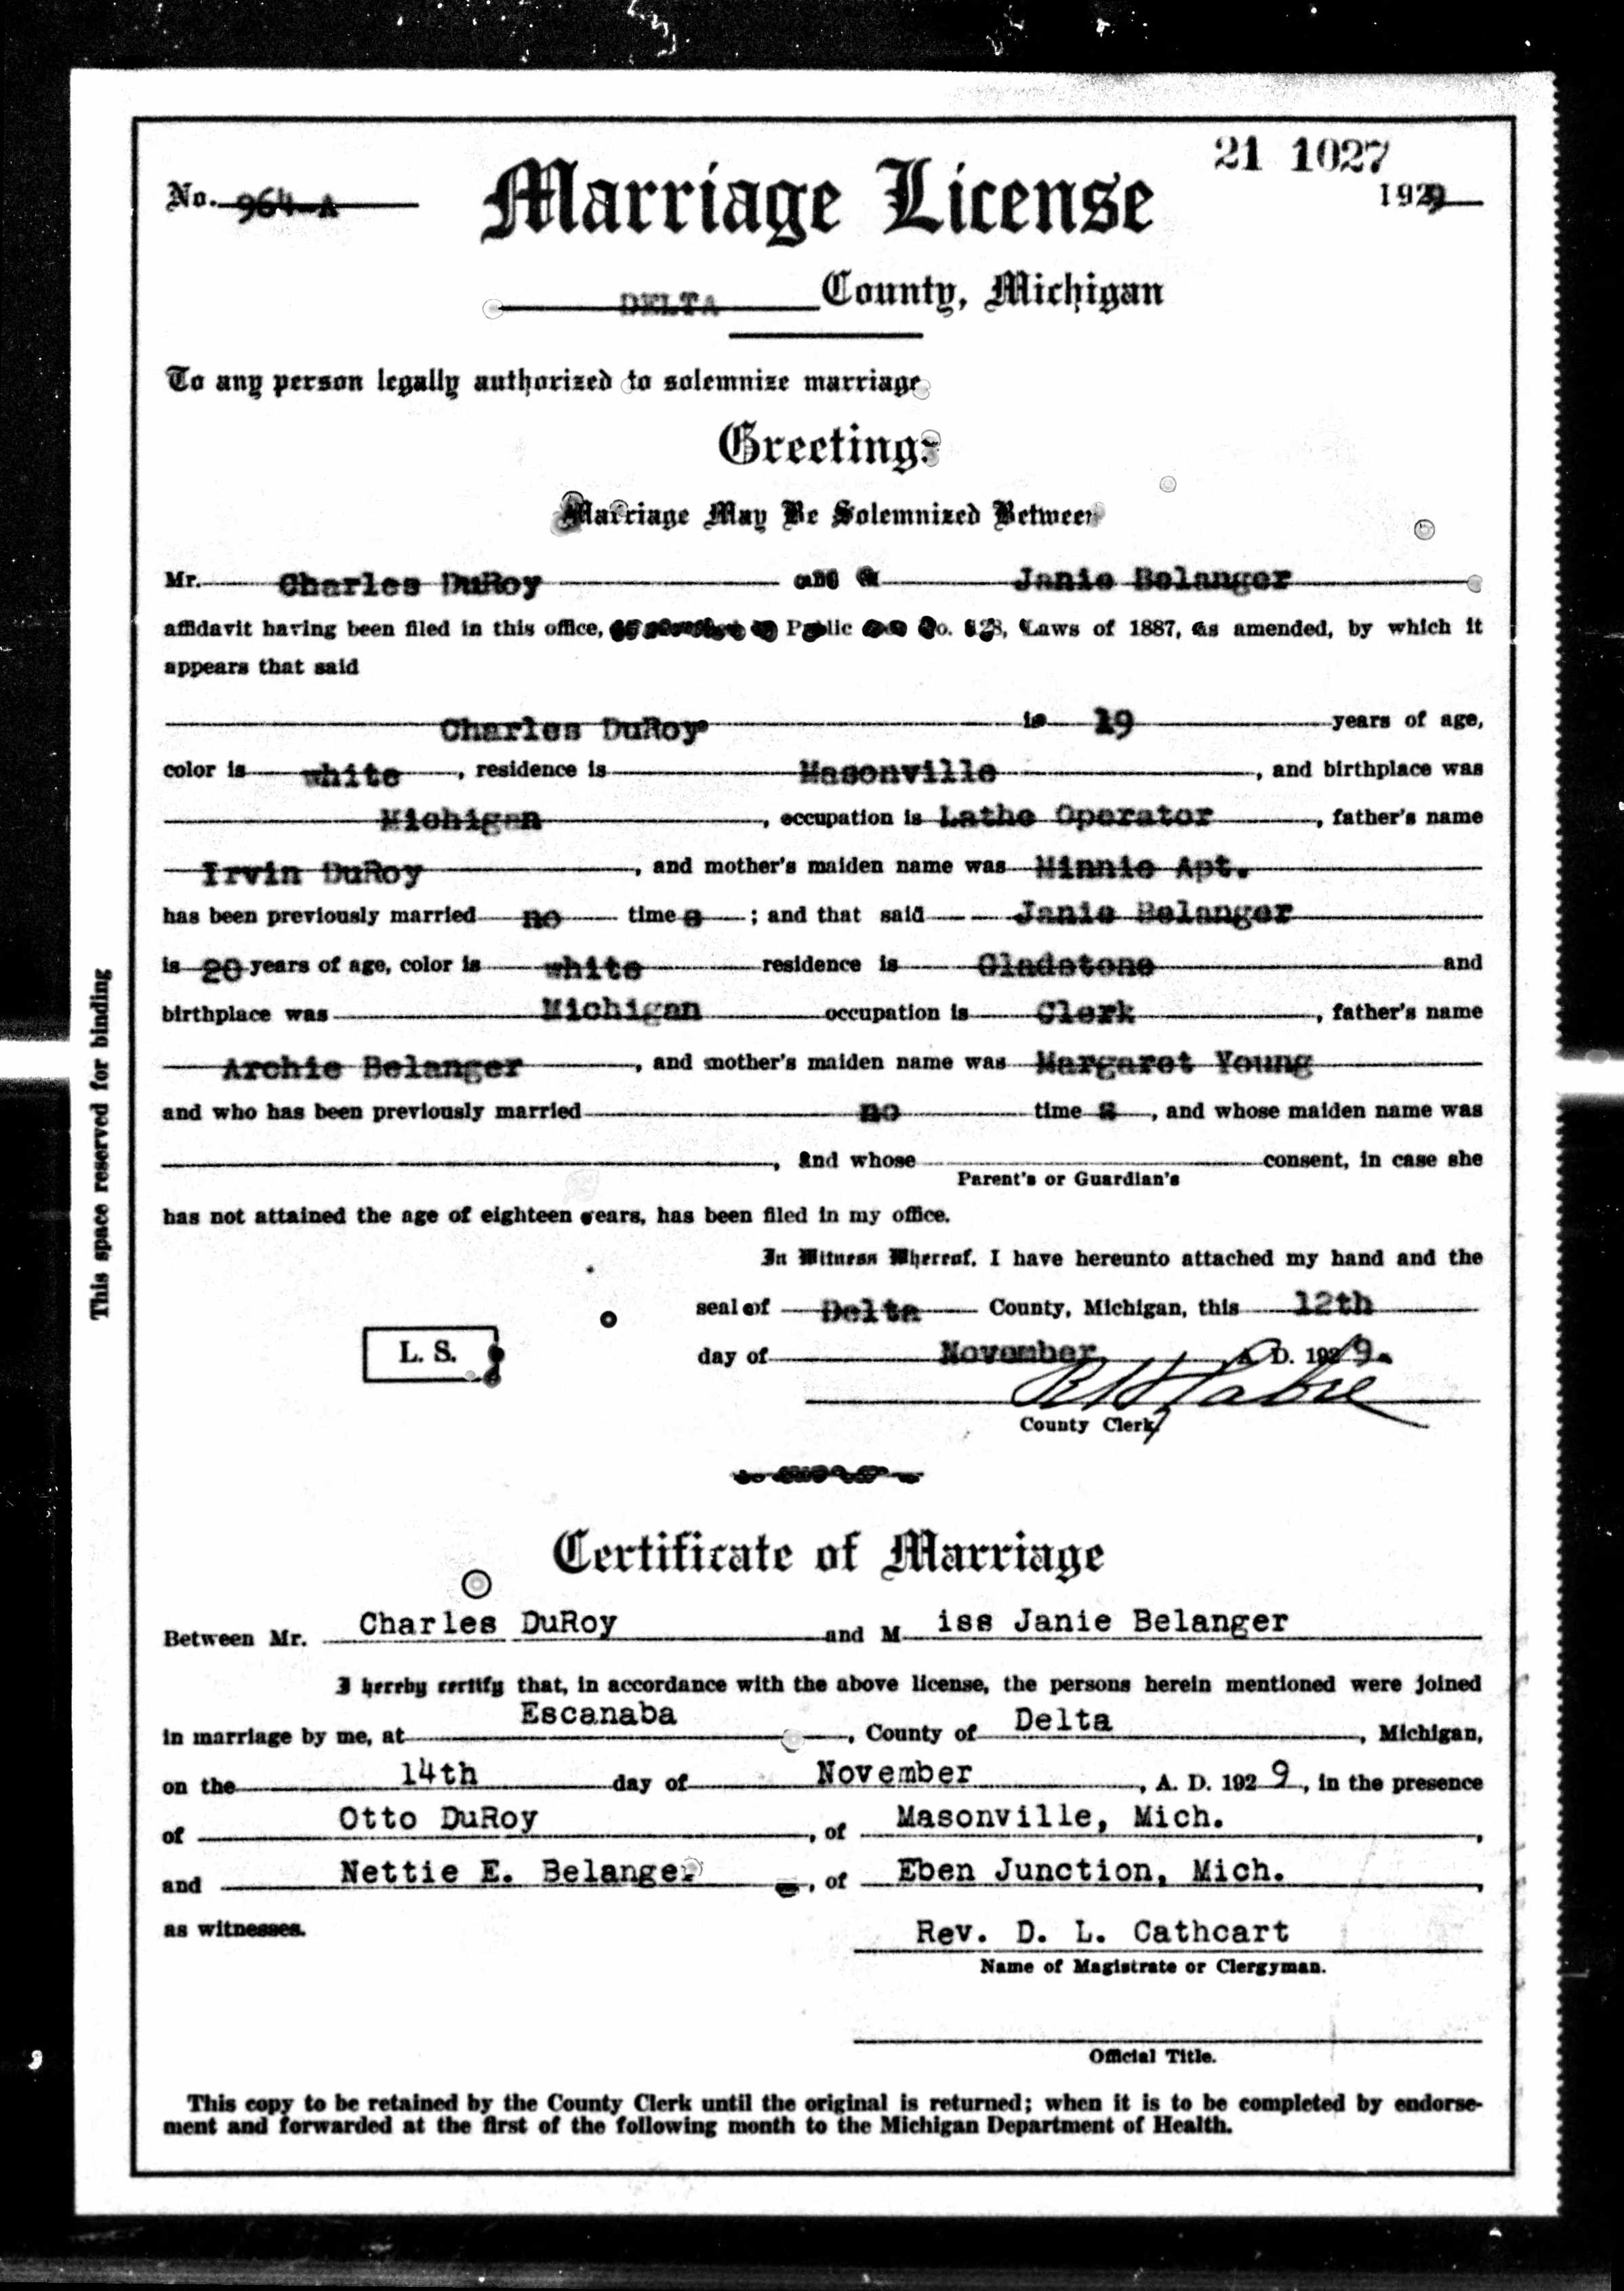 Marriage Returns and Licenses: Charles Duroy and Janie